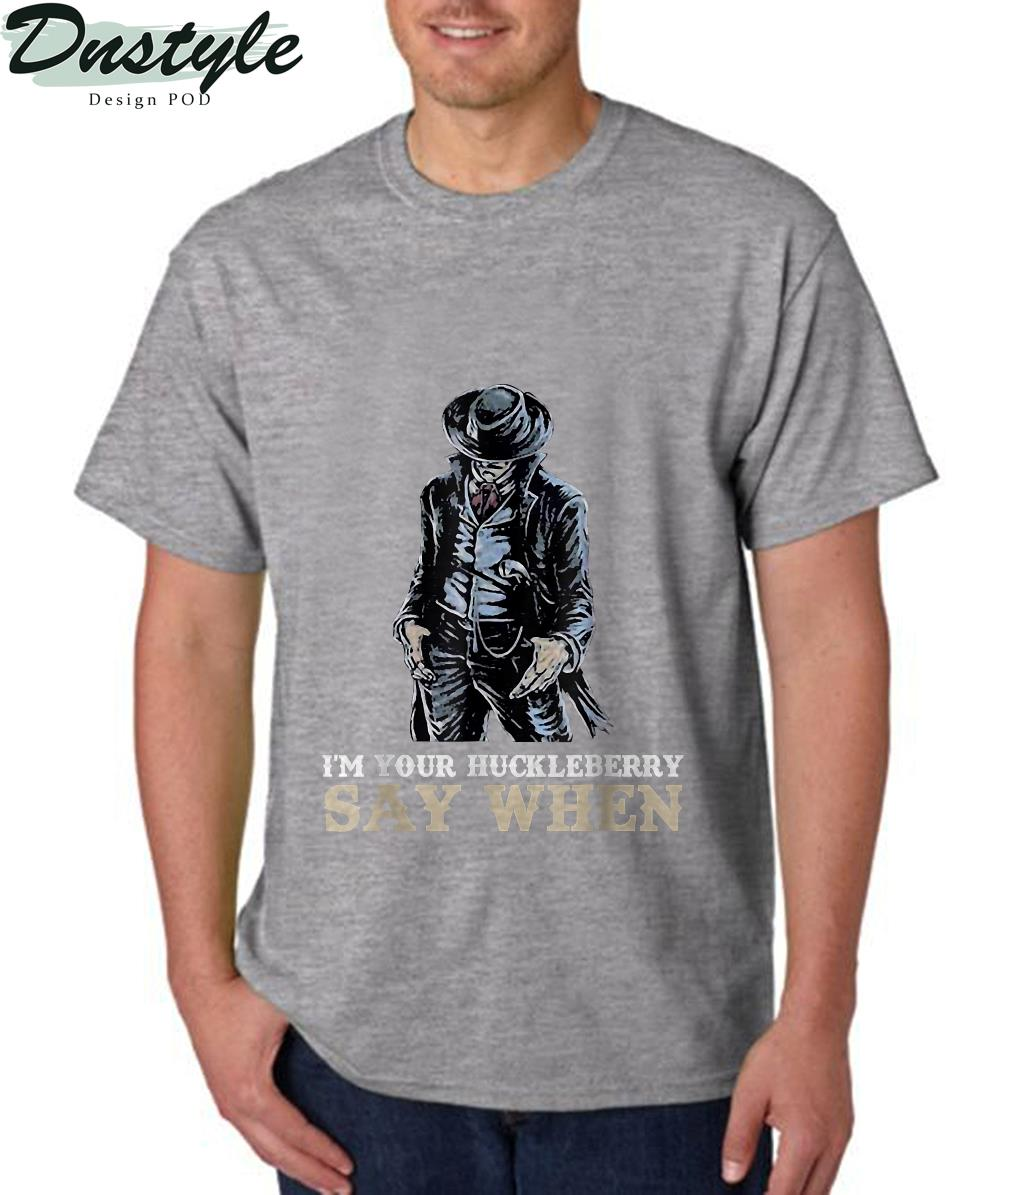 I'm Your Huckleberry Say When T-Shirt 3